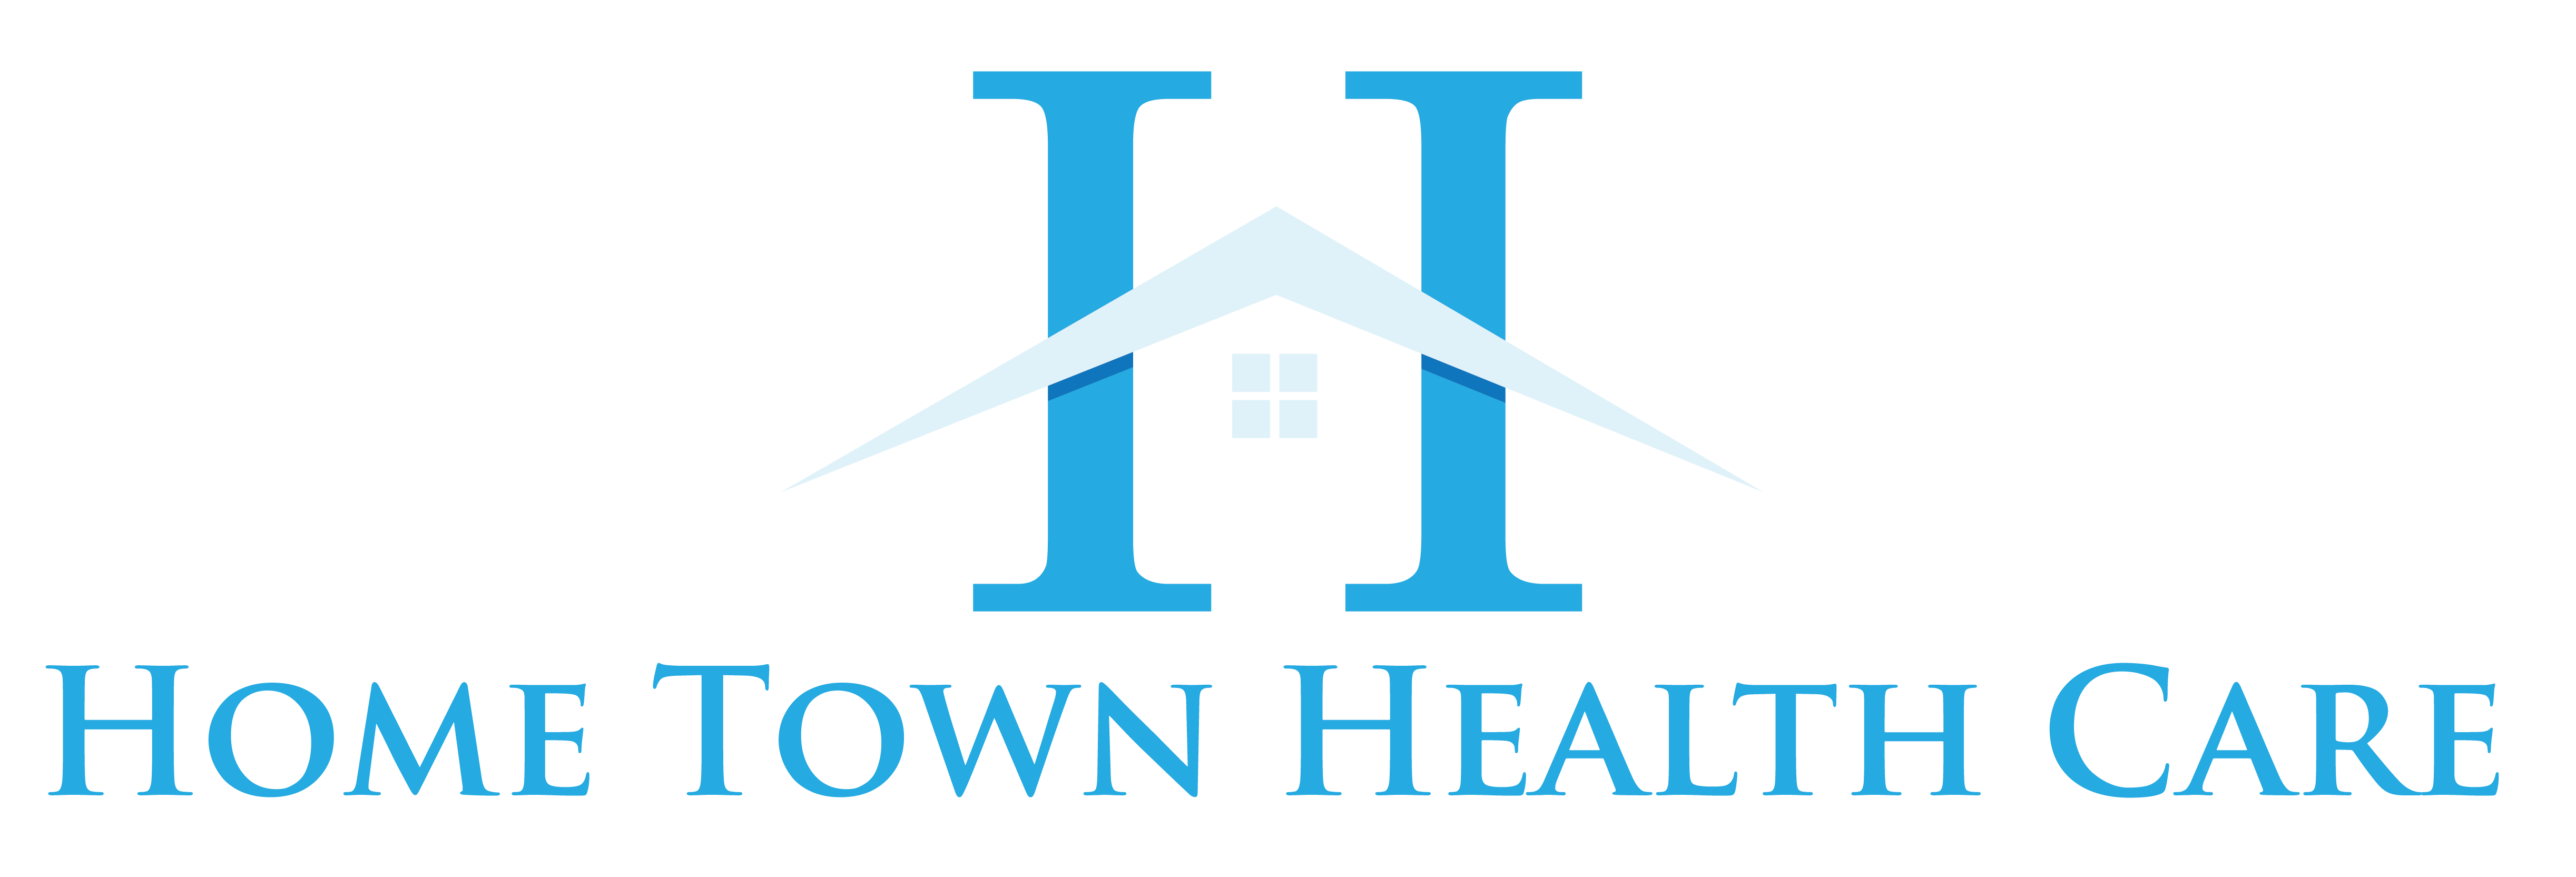 Home Town Health Care